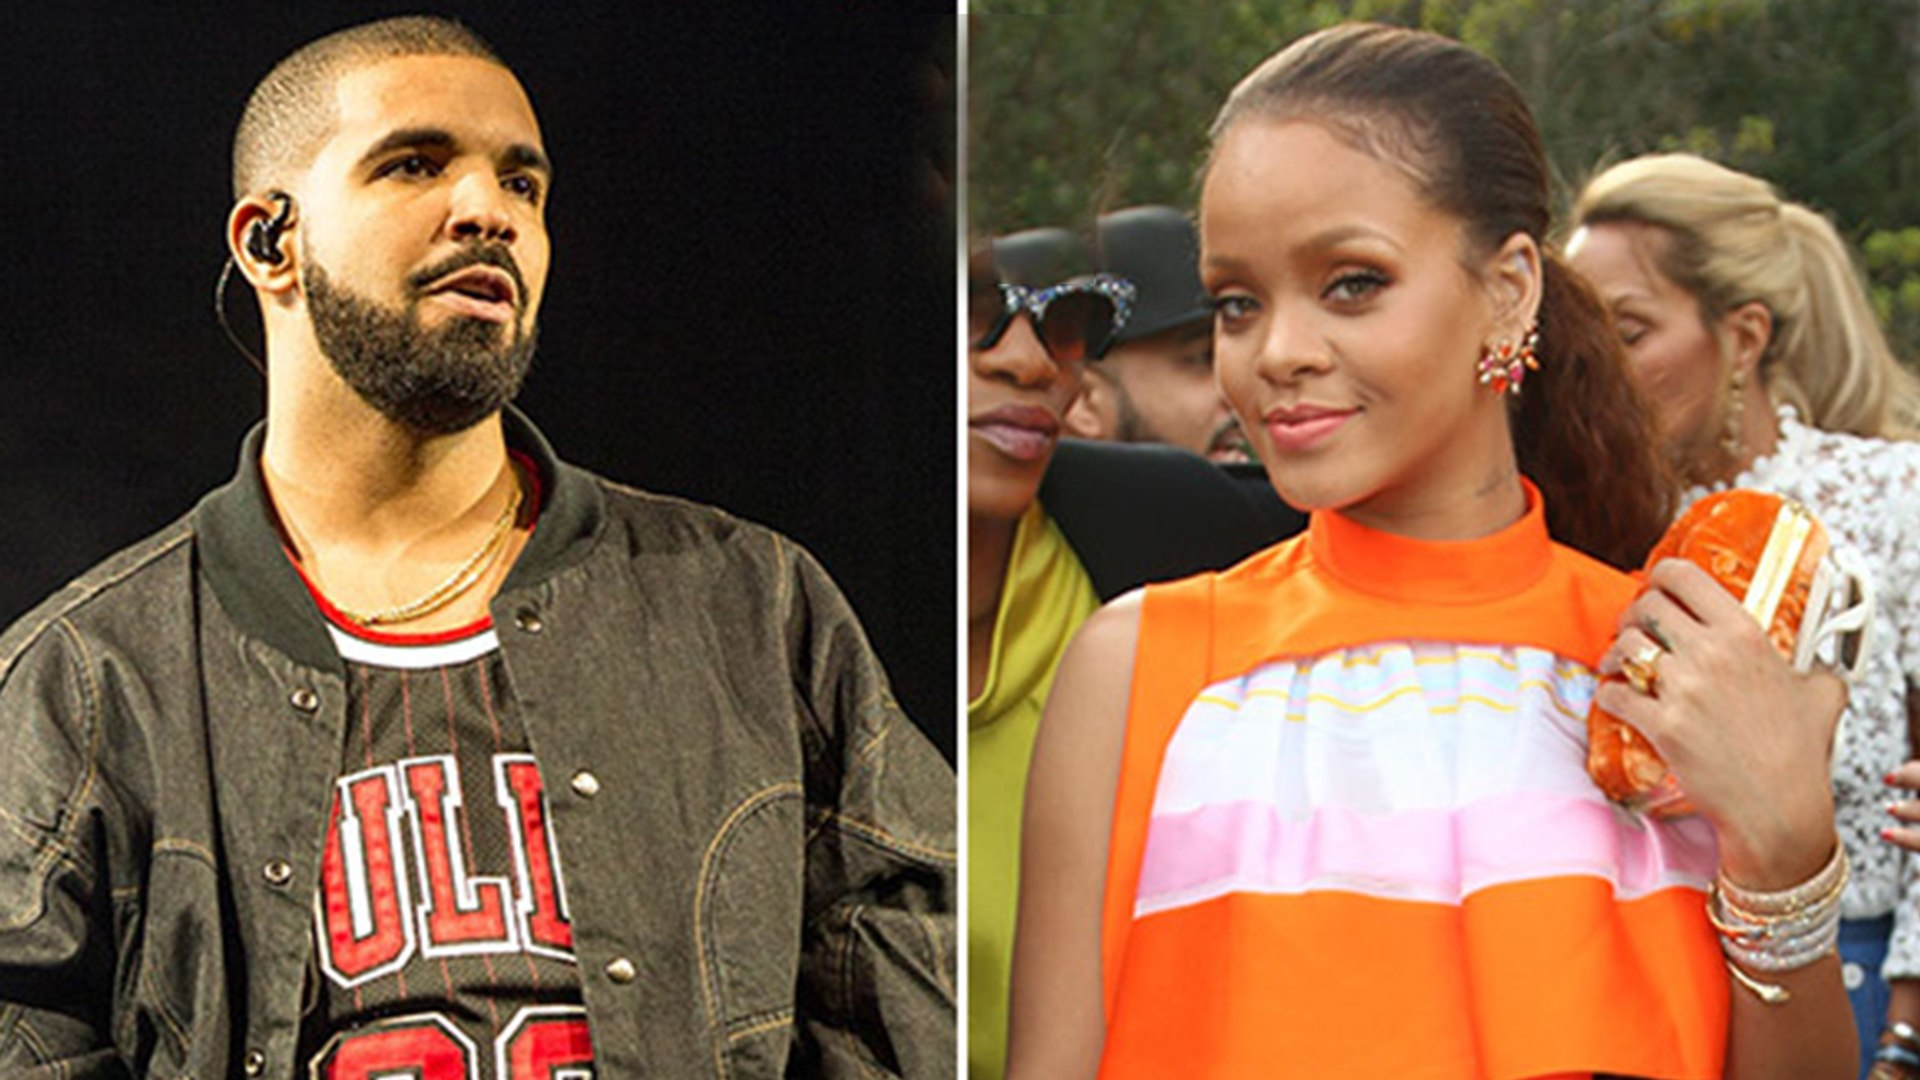 Rihanna Refused To Talk To Drake At Friend's Party